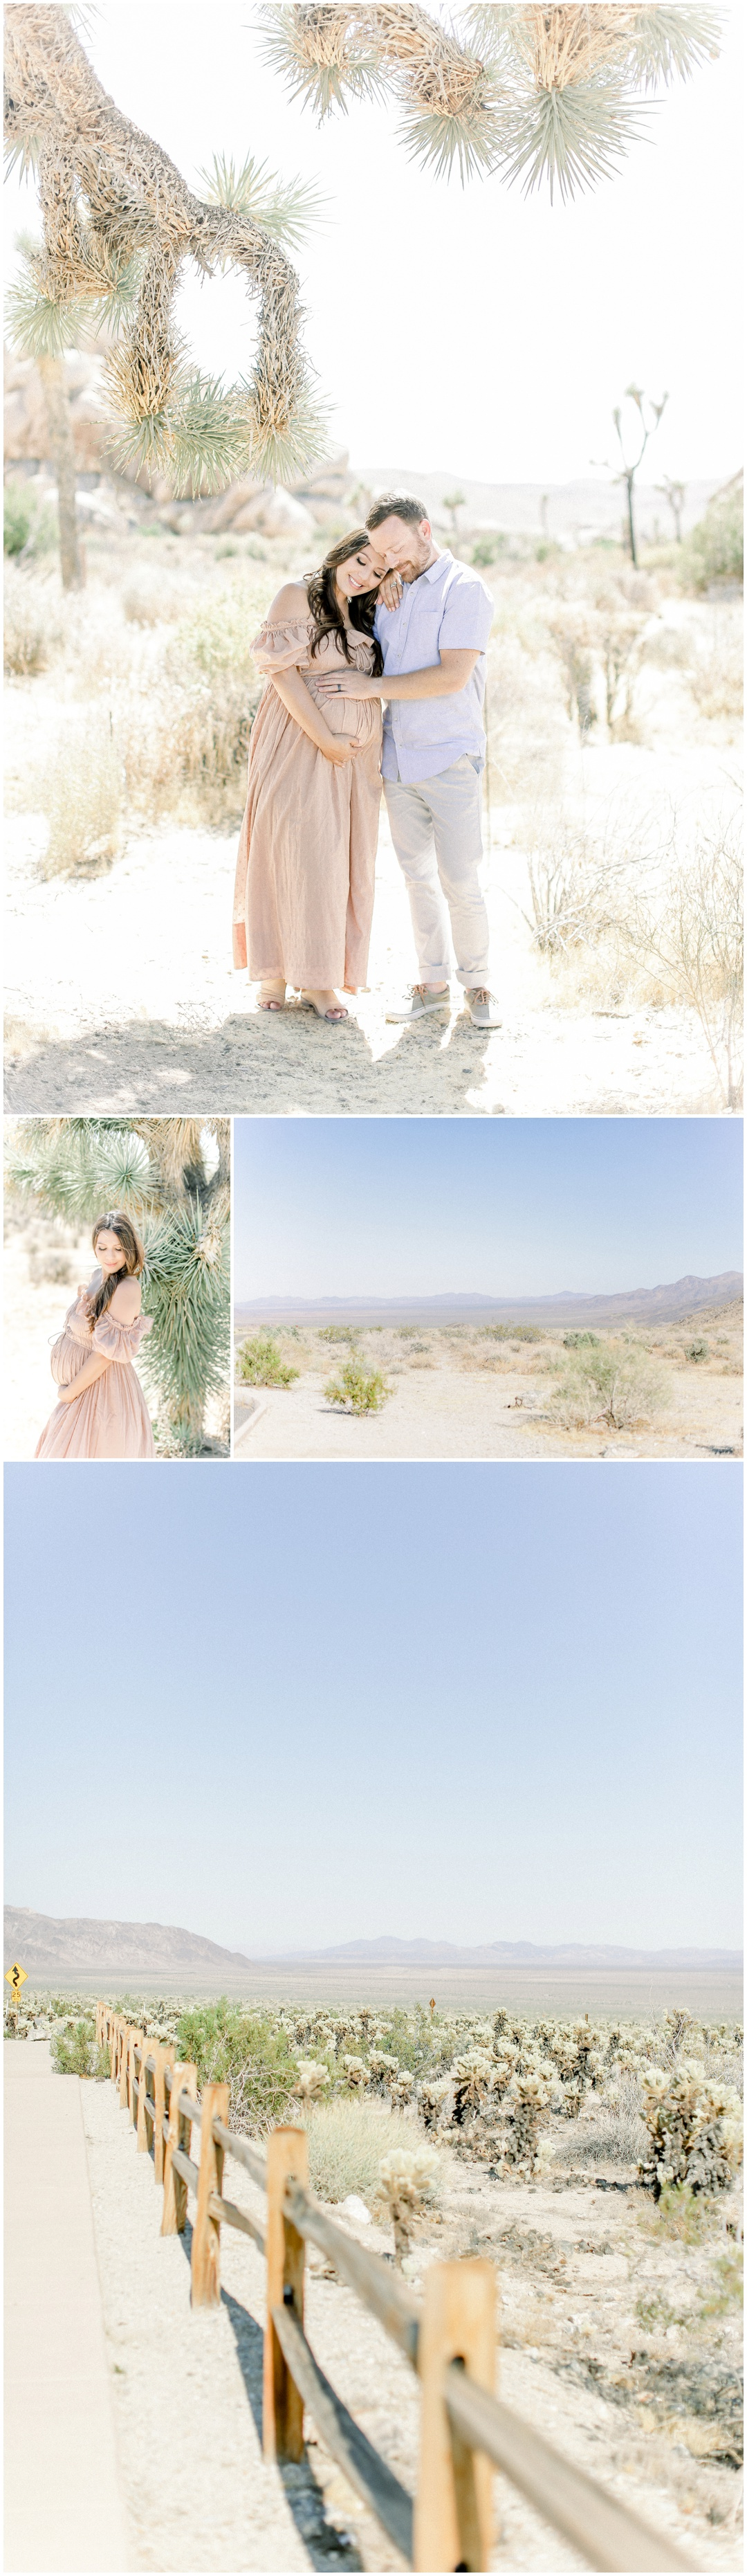 Newport_Beach_Joshua_Tree_Maternity_Photos_Session_Leliani_Hailey_Shane_Hailey_Maternity_Session__4280.jpg